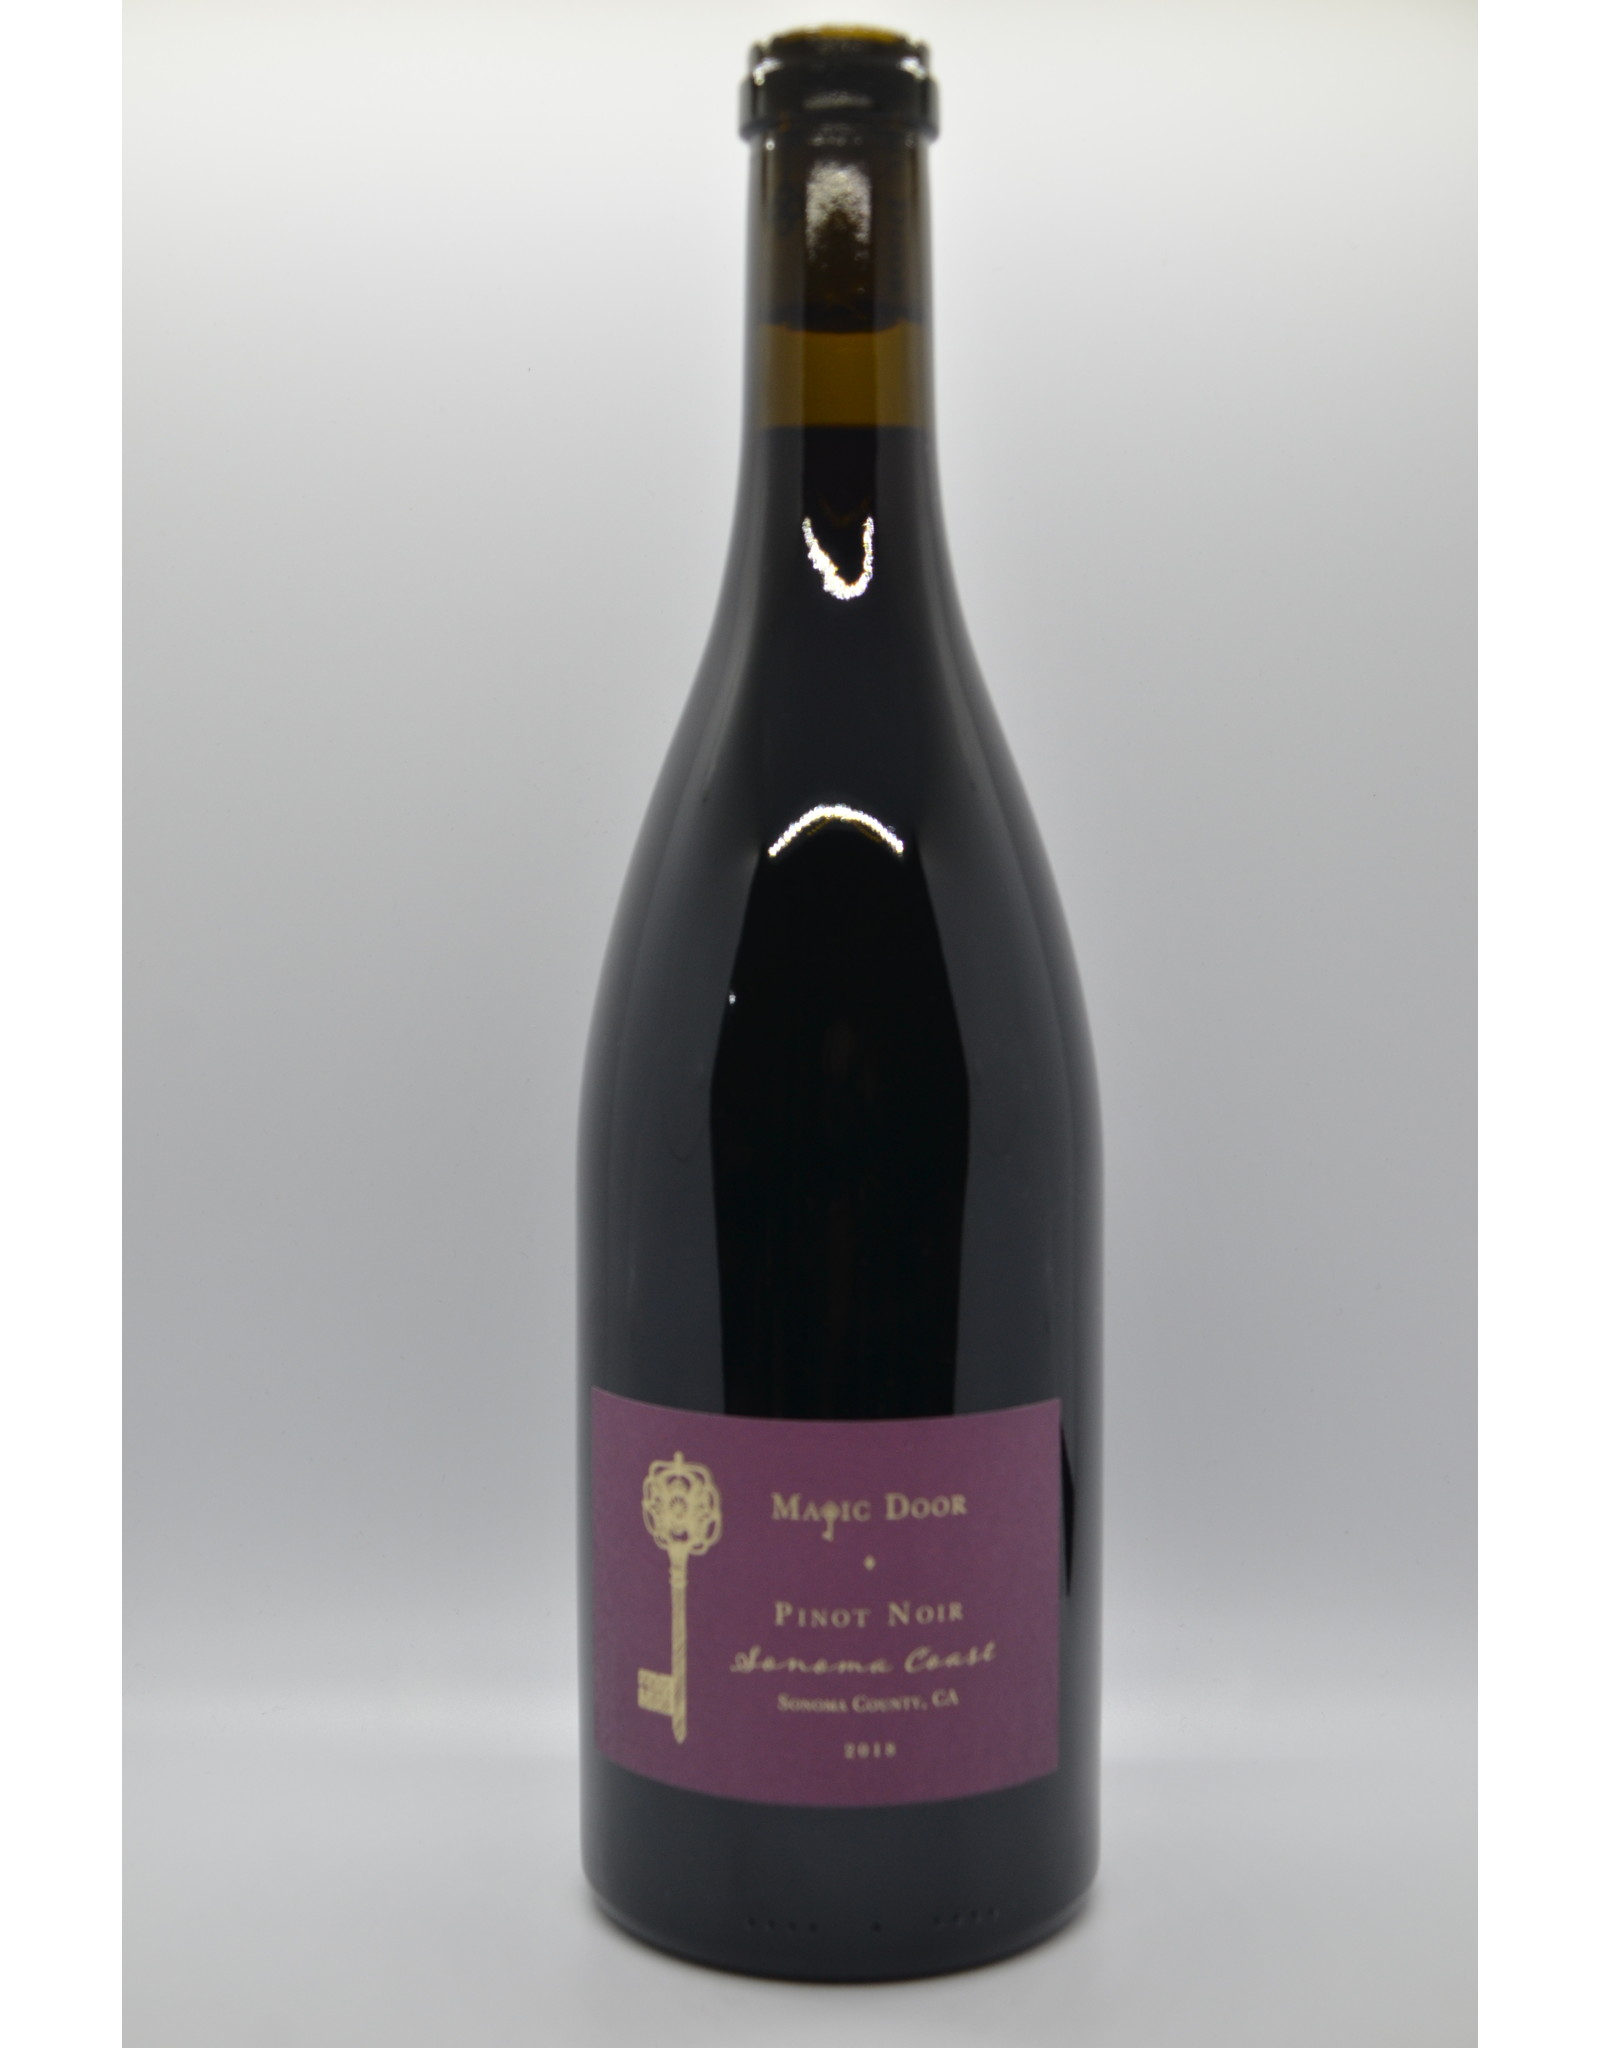 USA Magic Door Pinot Noir